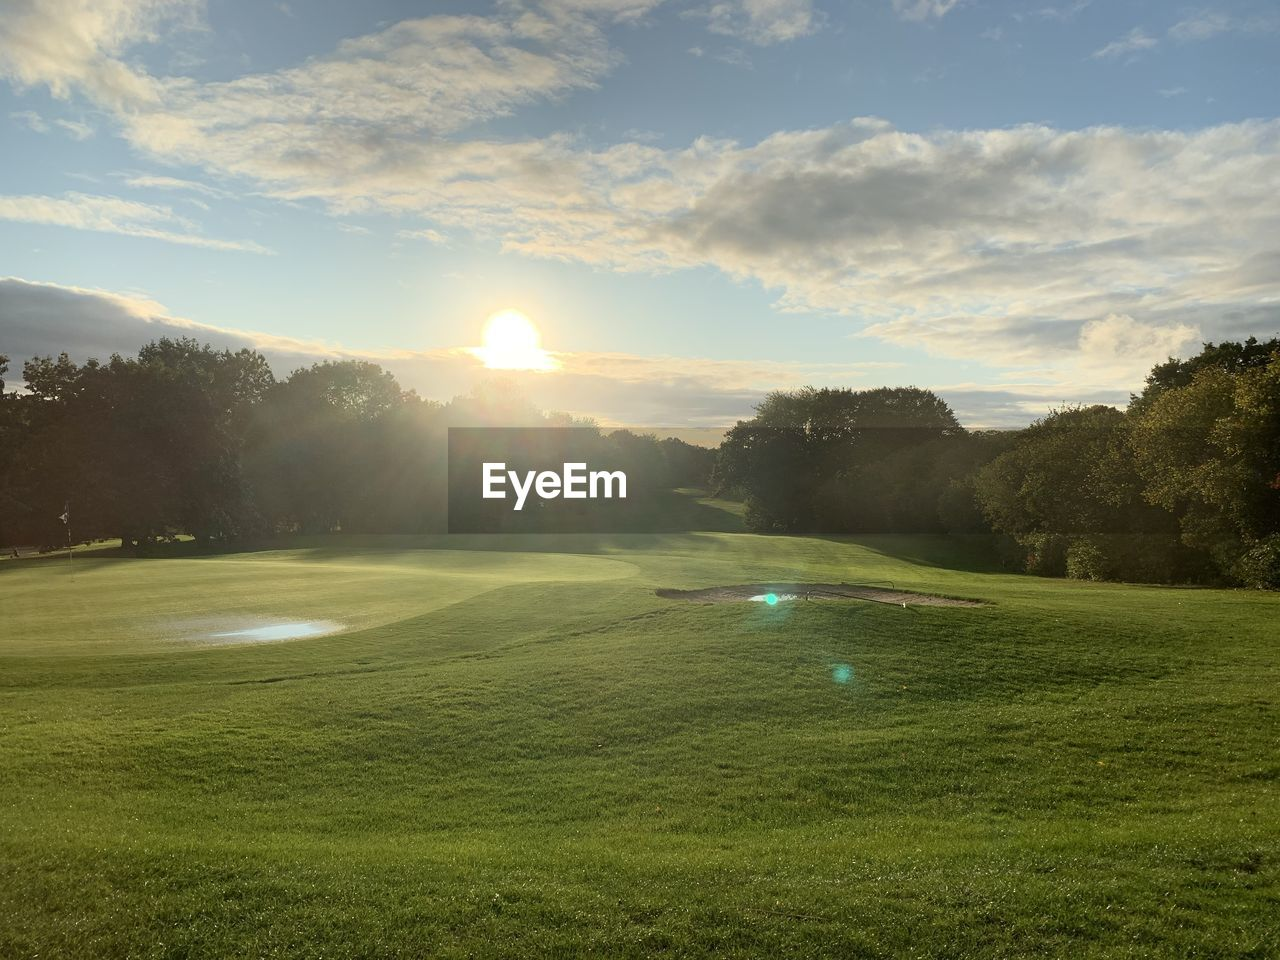 plant, grass, sky, tree, green color, beauty in nature, scenics - nature, tranquil scene, cloud - sky, sun, sunlight, tranquility, lens flare, no people, nature, landscape, land, day, environment, golf, outdoors, green - golf course